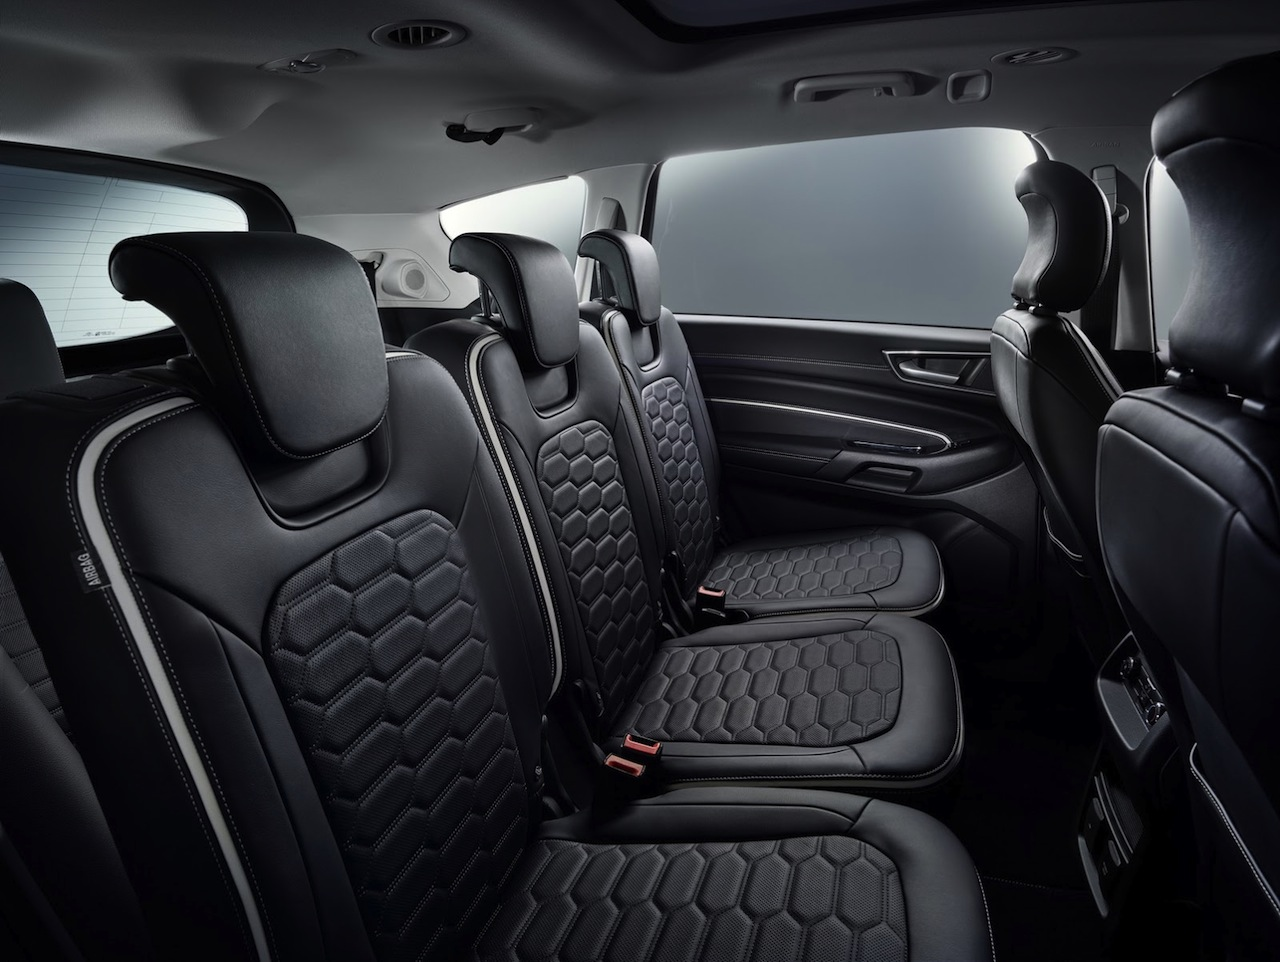 ford s max vignale m ximo cuidado en los detalles. Black Bedroom Furniture Sets. Home Design Ideas